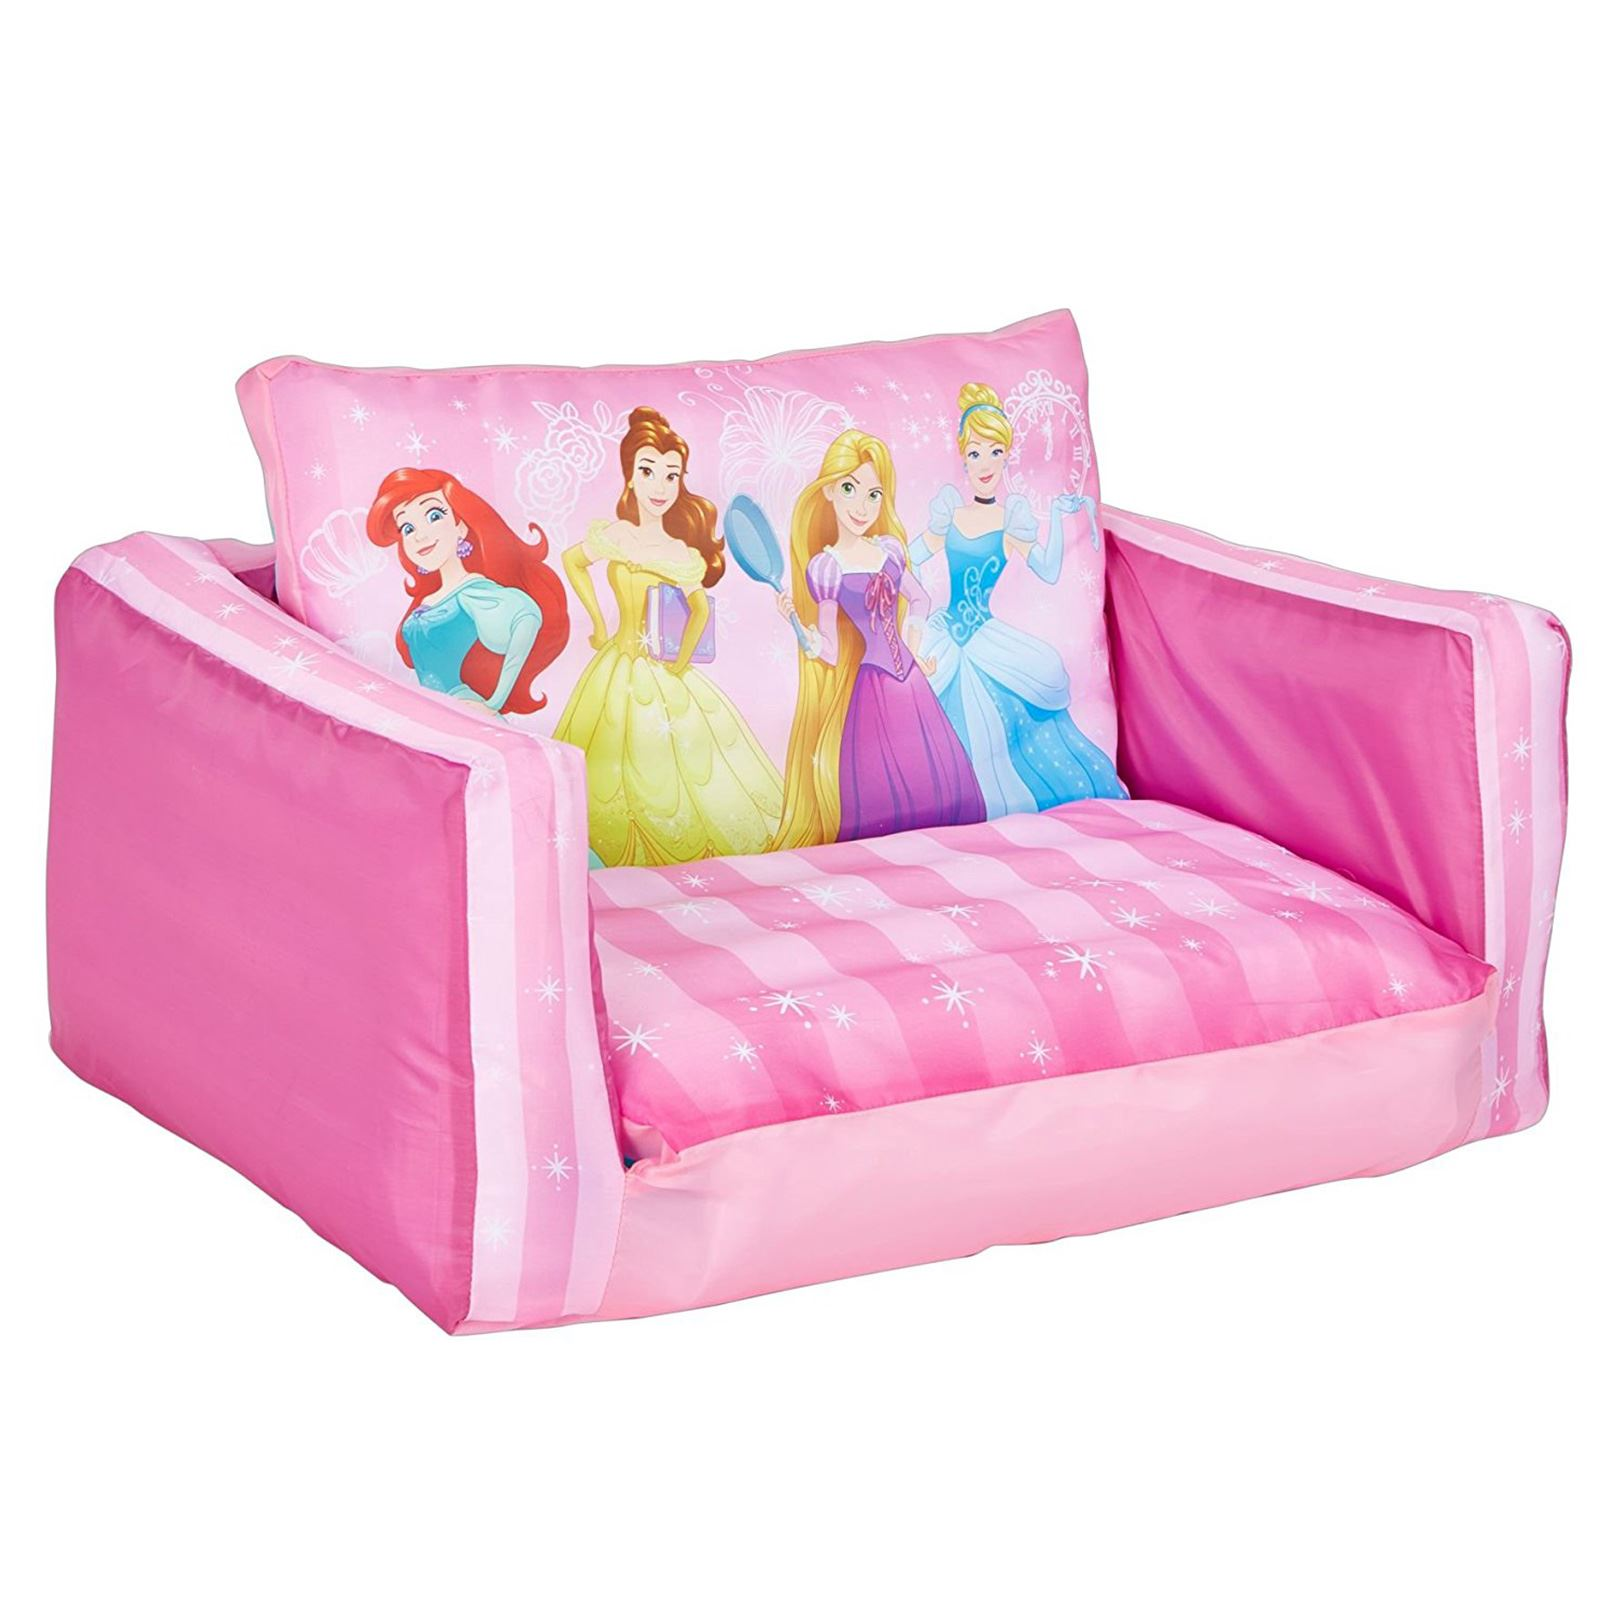 FLIP OUT SOFA RANGE INFLATABLE KIDS ROOM NEW